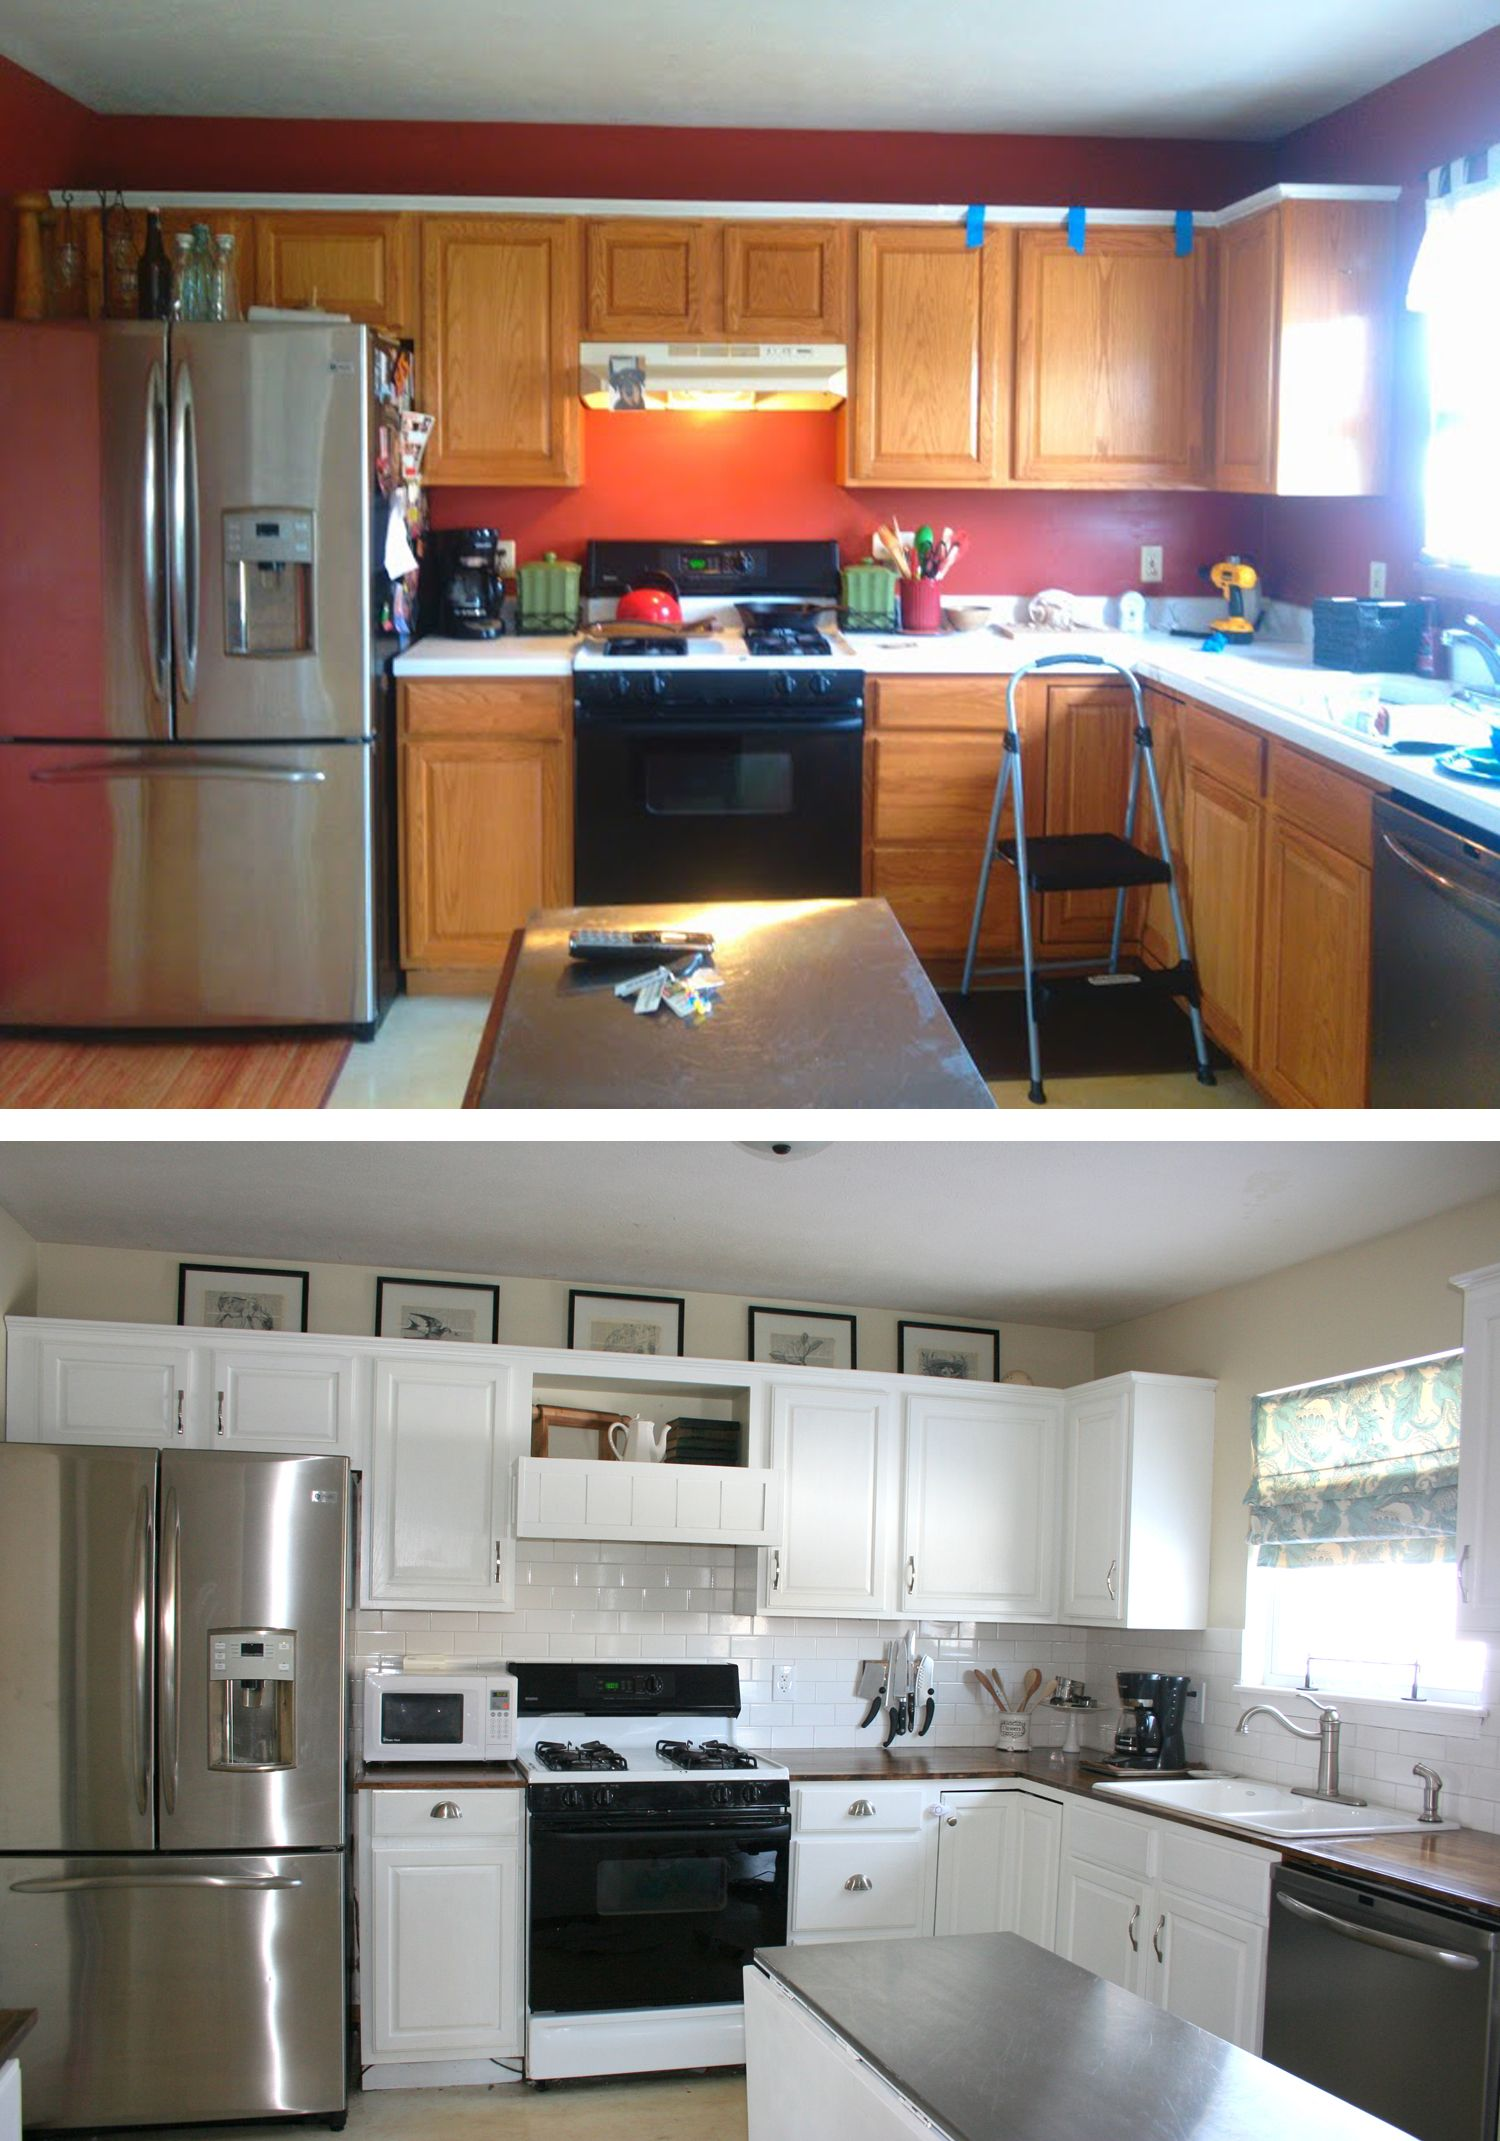 See What This Kitchen Looks Like After An 800 Diy Makeover Renovations Remodel Small Cost